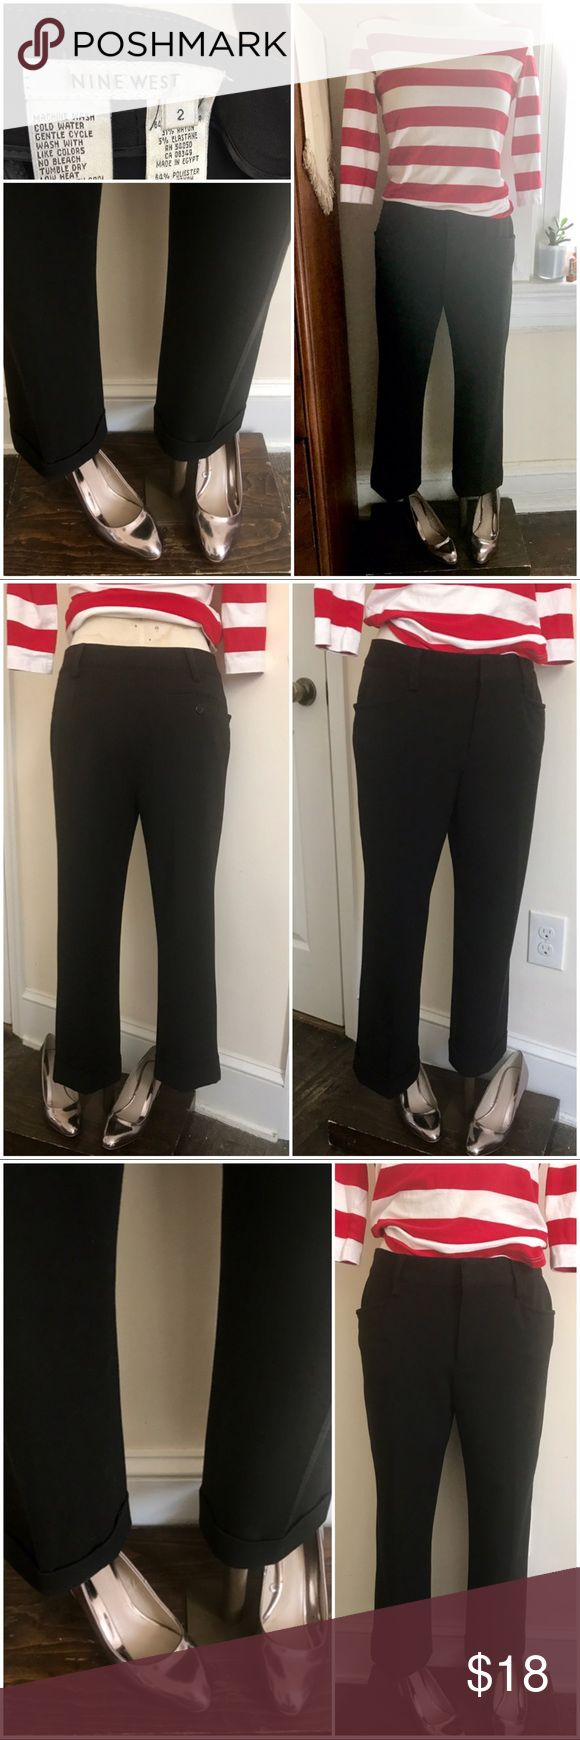 "Black cigarette pants EUC- vintage style cropped cuffed black cigarette pants 2 real front pockets, one back button pocket Marked size 2 - but they're pretty roomy on me and fit more like a 4  Model stands approx 5'3""  Mid rise  Brand Nine West Nine West Pants Ankle & Cropped"